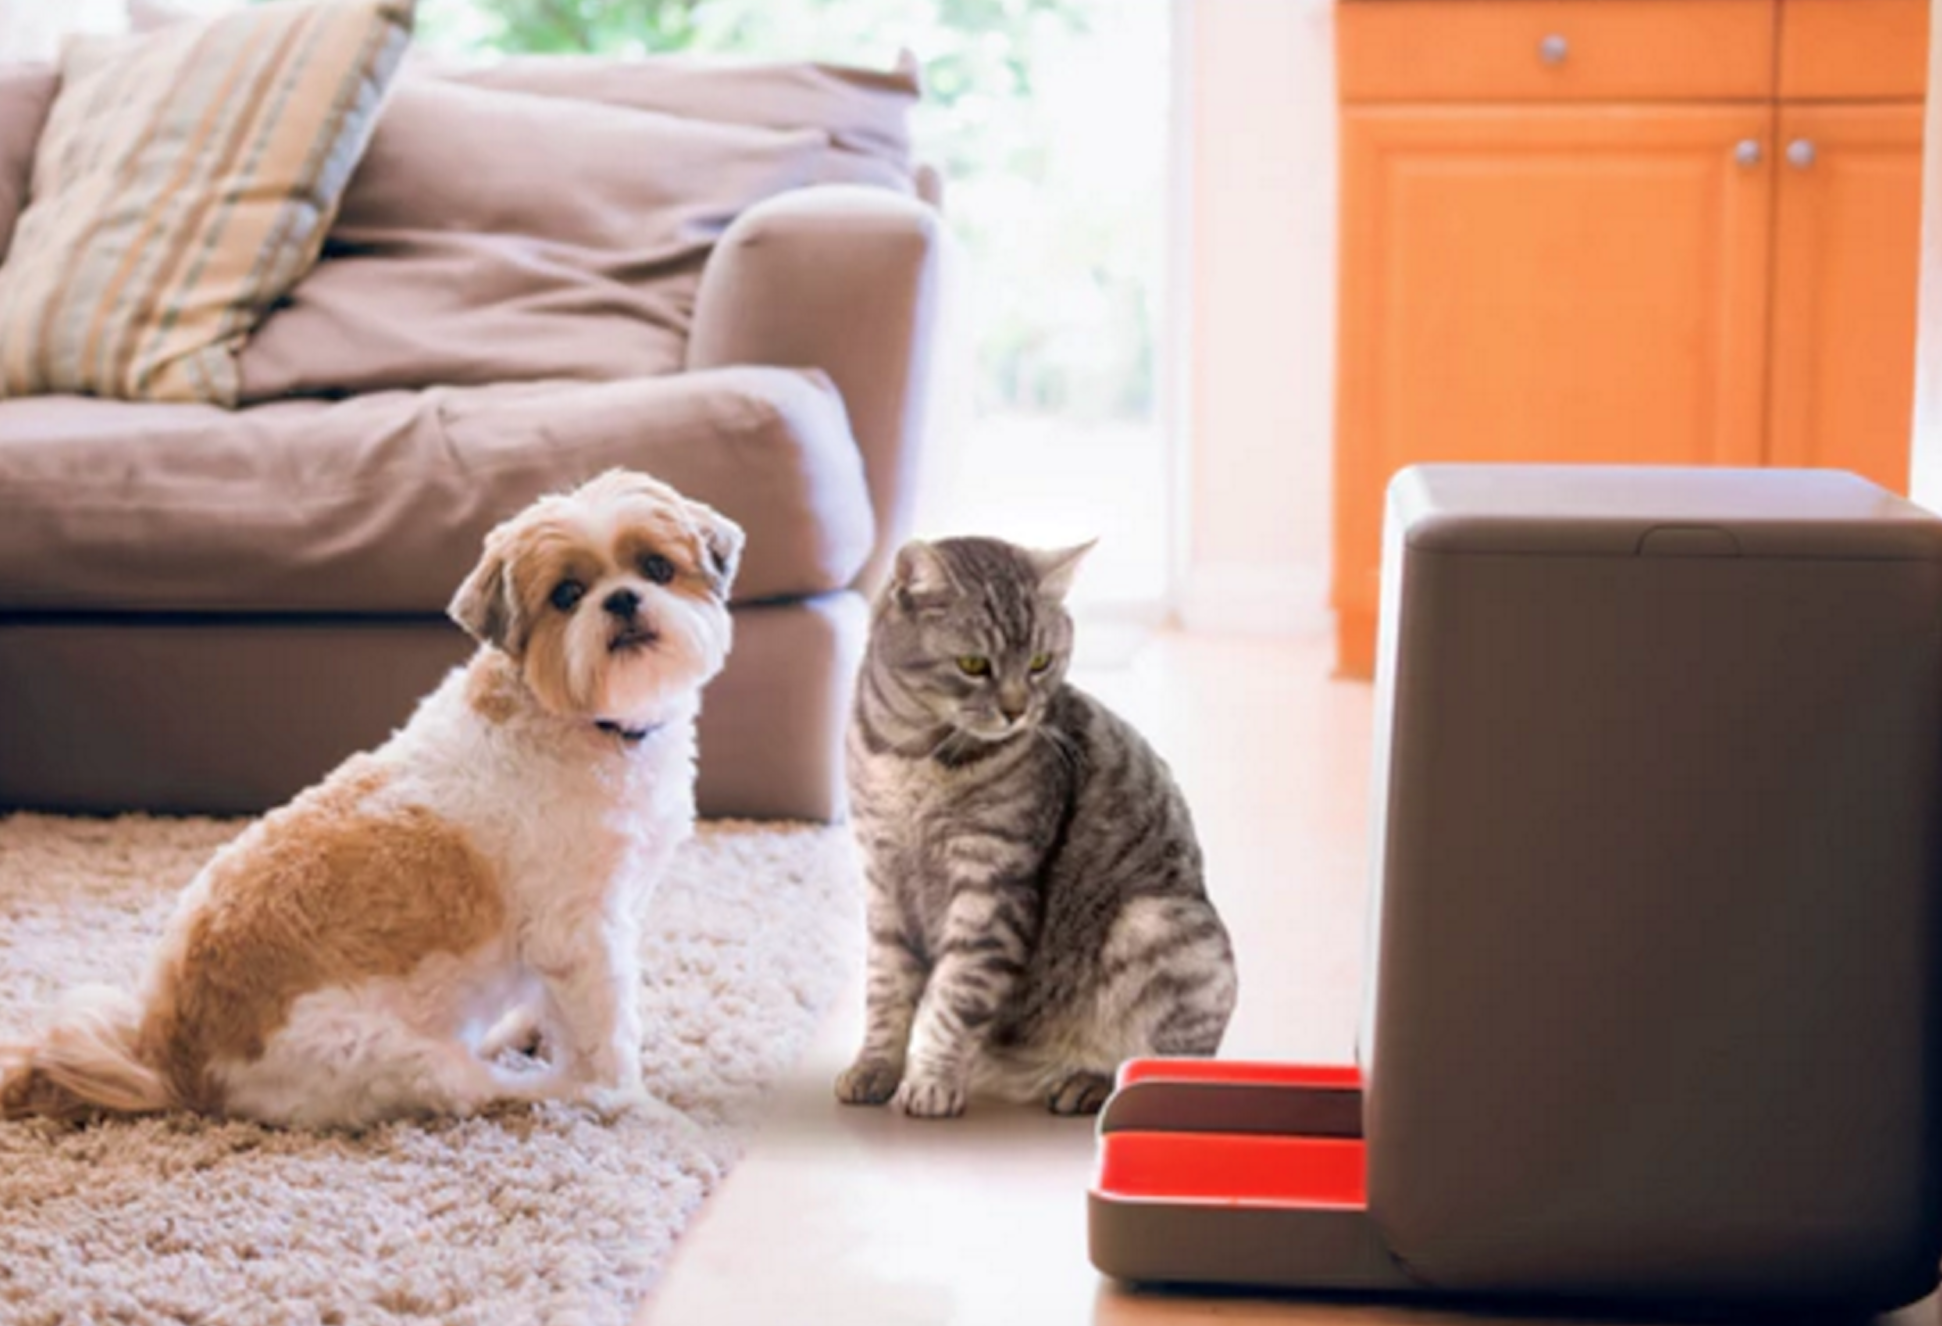 Automatic pet feeder will order food from Amazon when youre